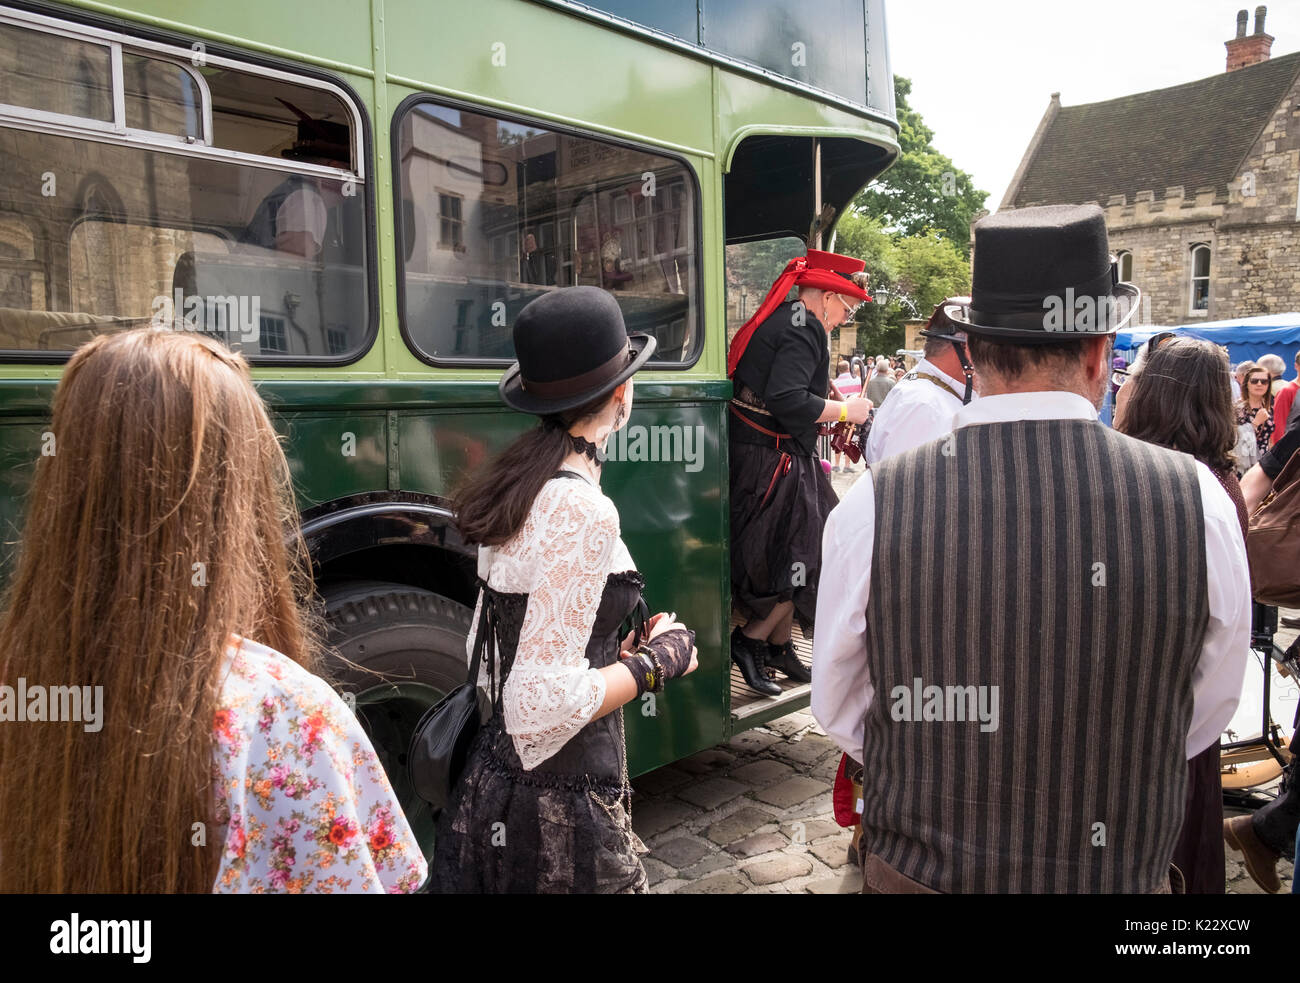 Old style bus dropping of people at the 2017 Lincoln Steampunk Festival, City of Lincoln, Lincolnshire UK - Stock Image